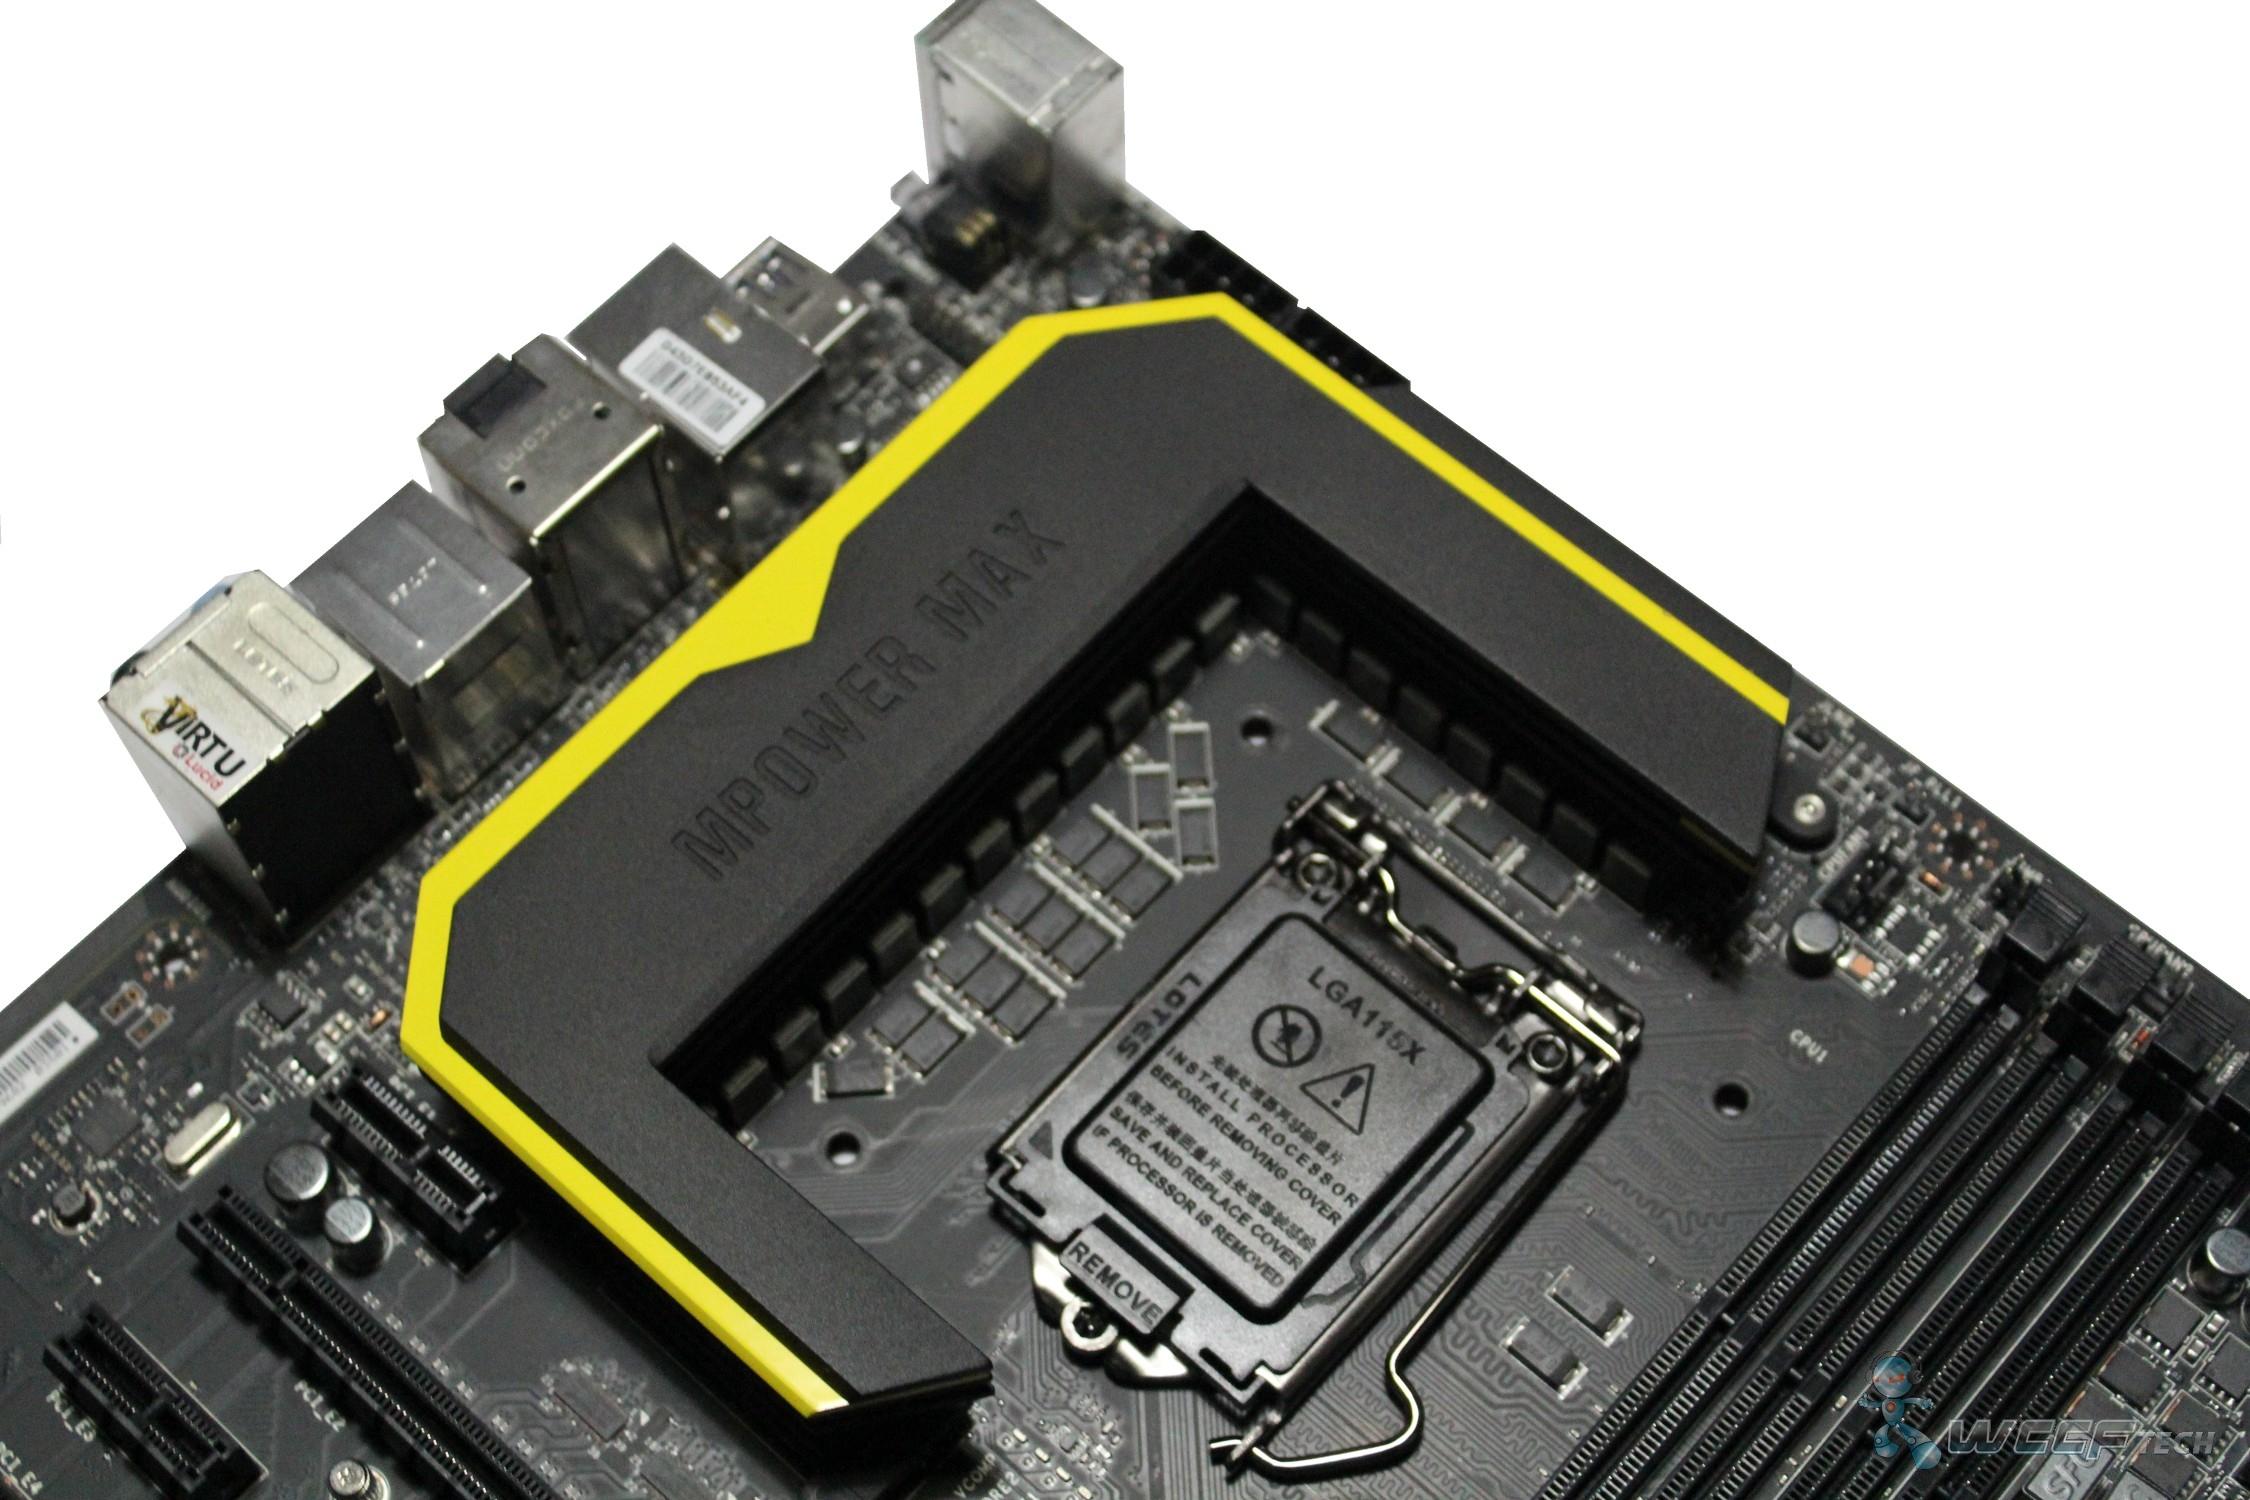 MSI Z87 MPOWER Intel Smart Connect Technology Driver UPDATE